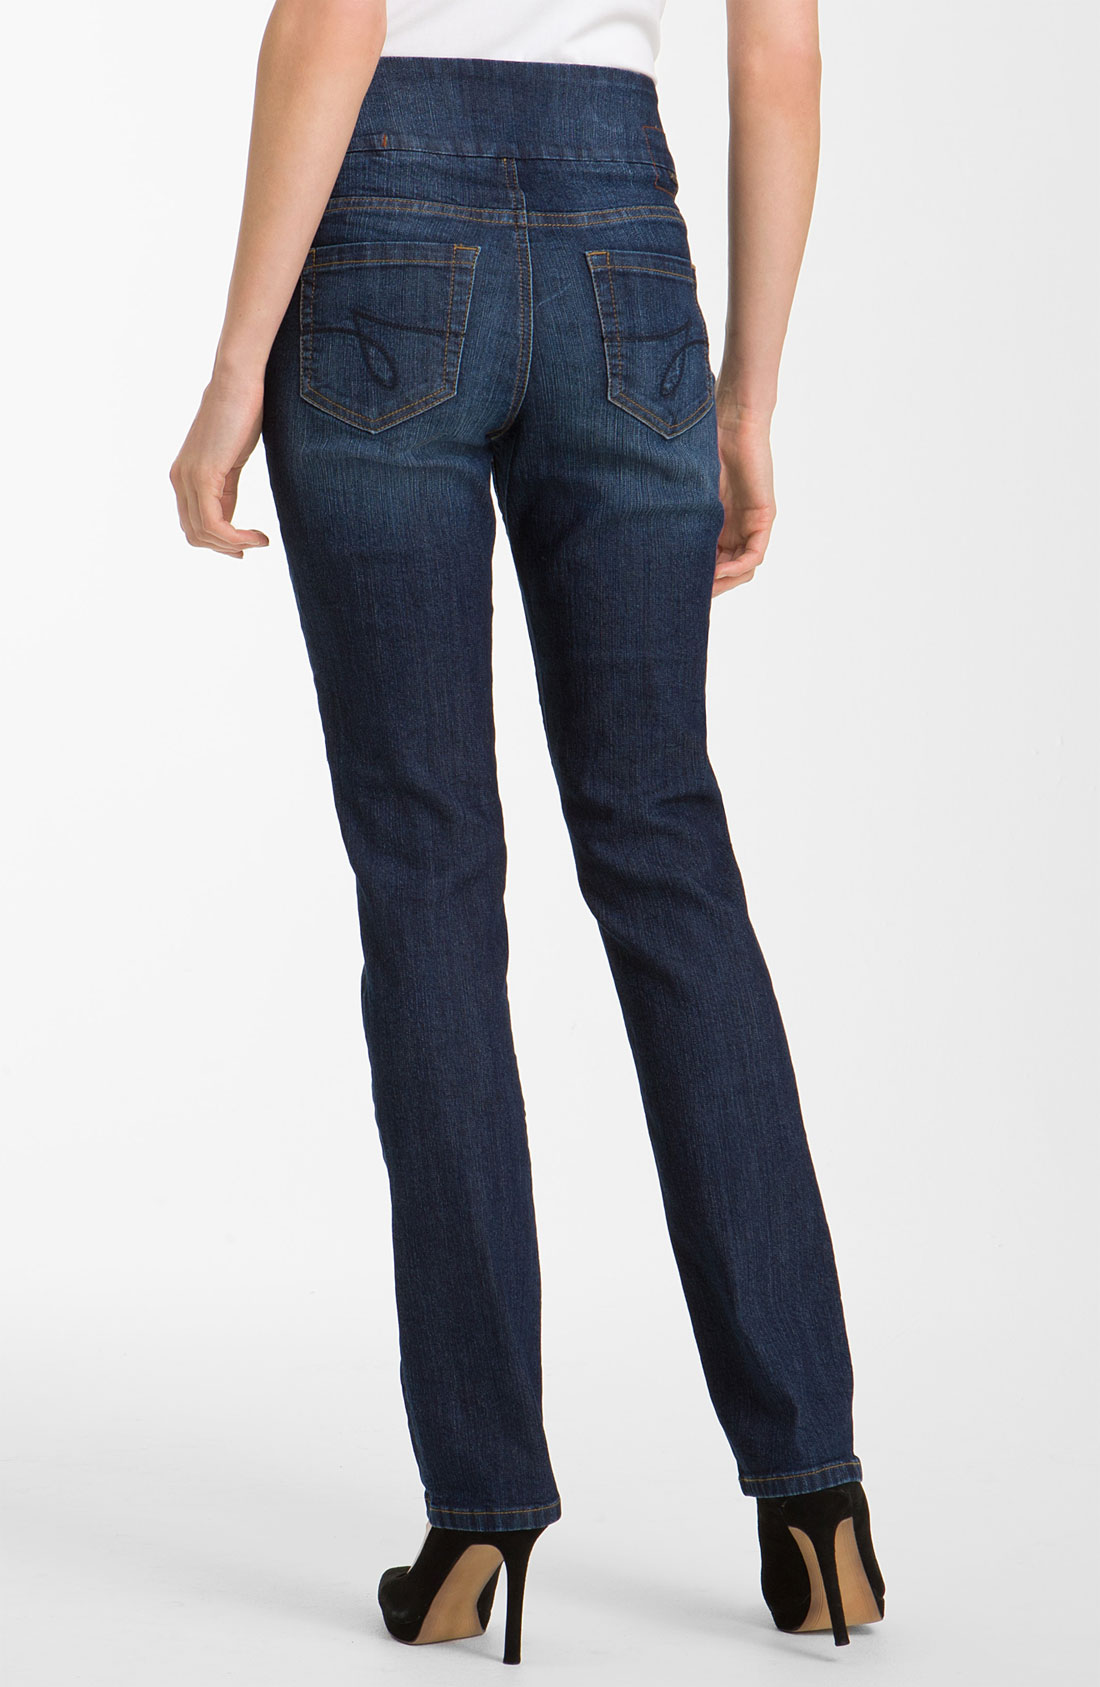 Jag Jeans Peri Pullon Jeans in Blue (blue shadow rinse)   Lyst